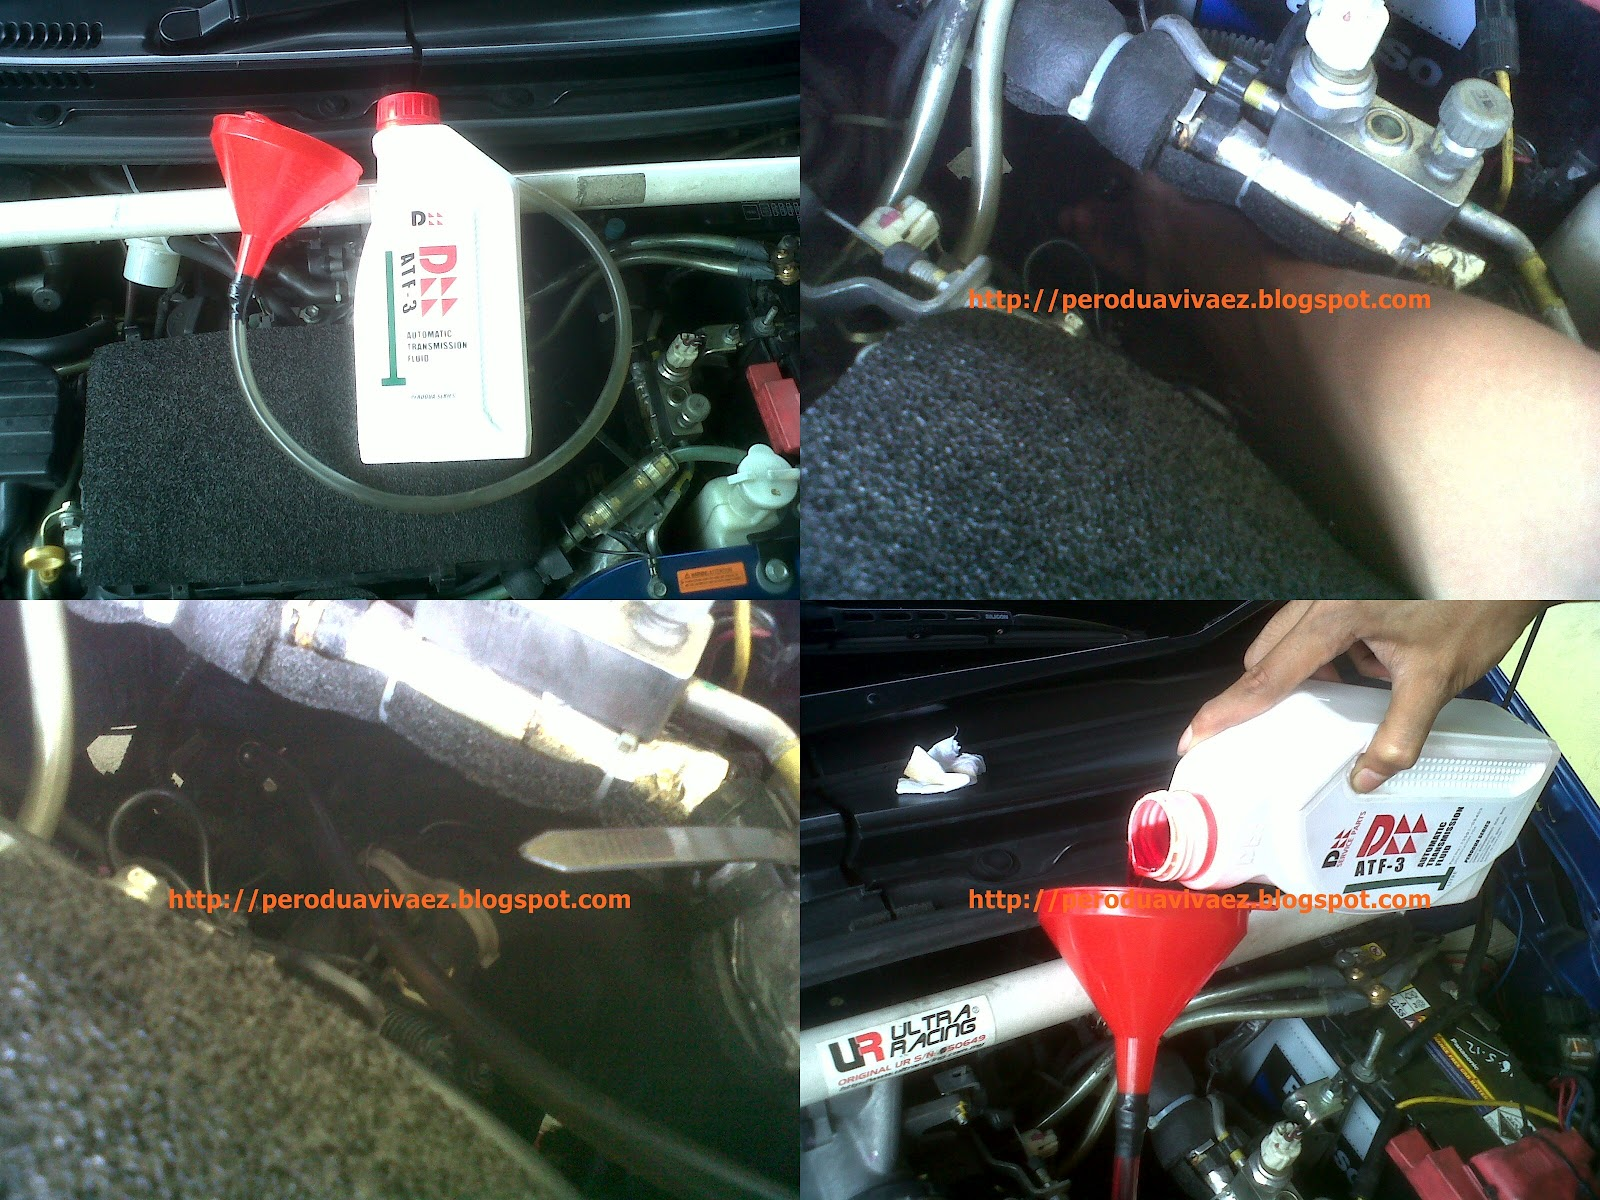 The journey begins it is time to change atf it is already time to change the automatic transmission fluid atf this time i would like to share how to do it yourself my advice is to change the solutioingenieria